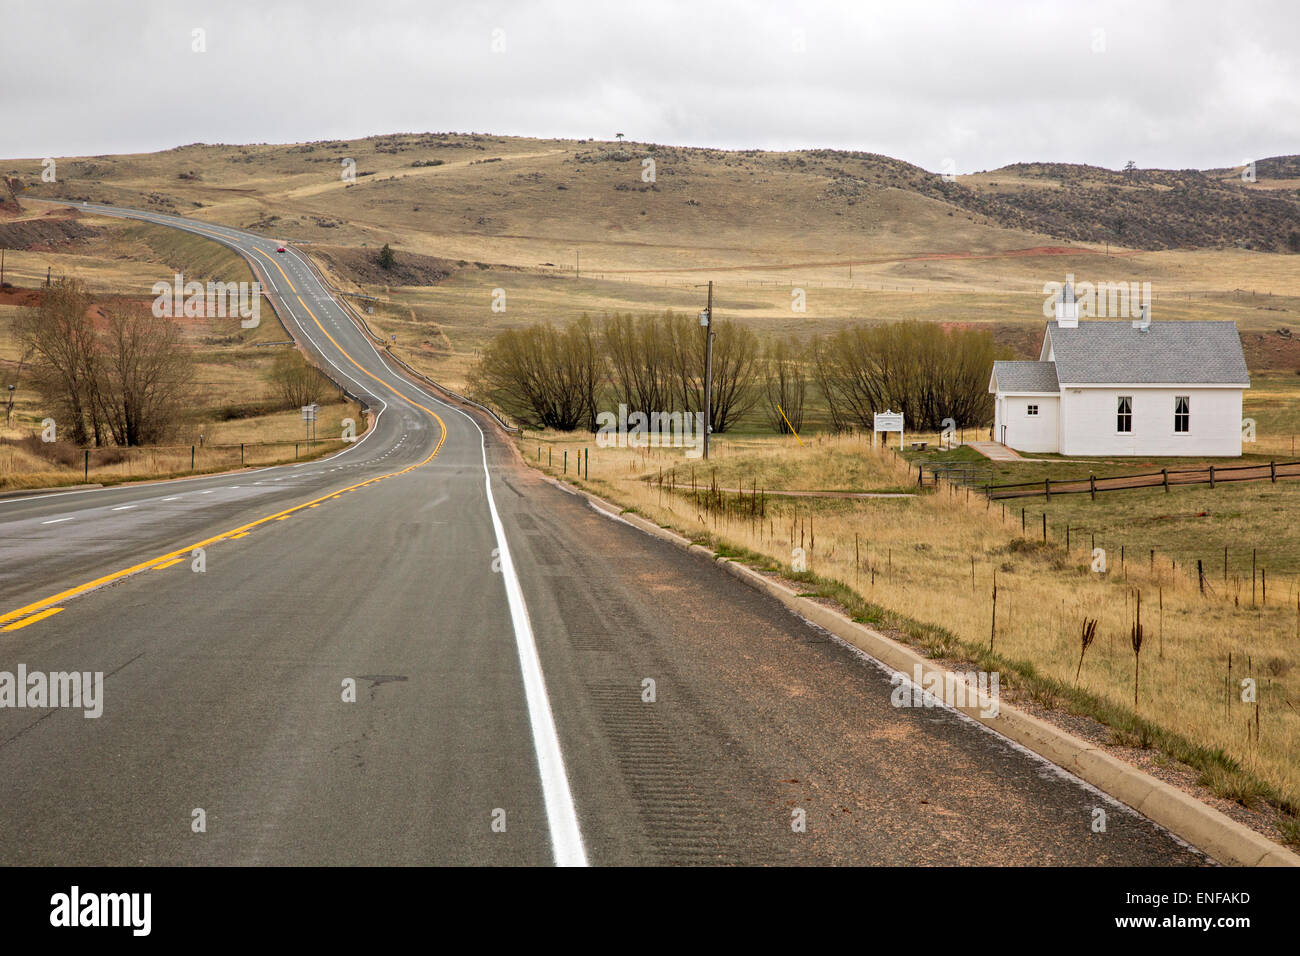 Virginia Dale, Colorado - The Virginia Dale Community Church, on an isolated stretch of US 287 in northern Colorado. - Stock Image